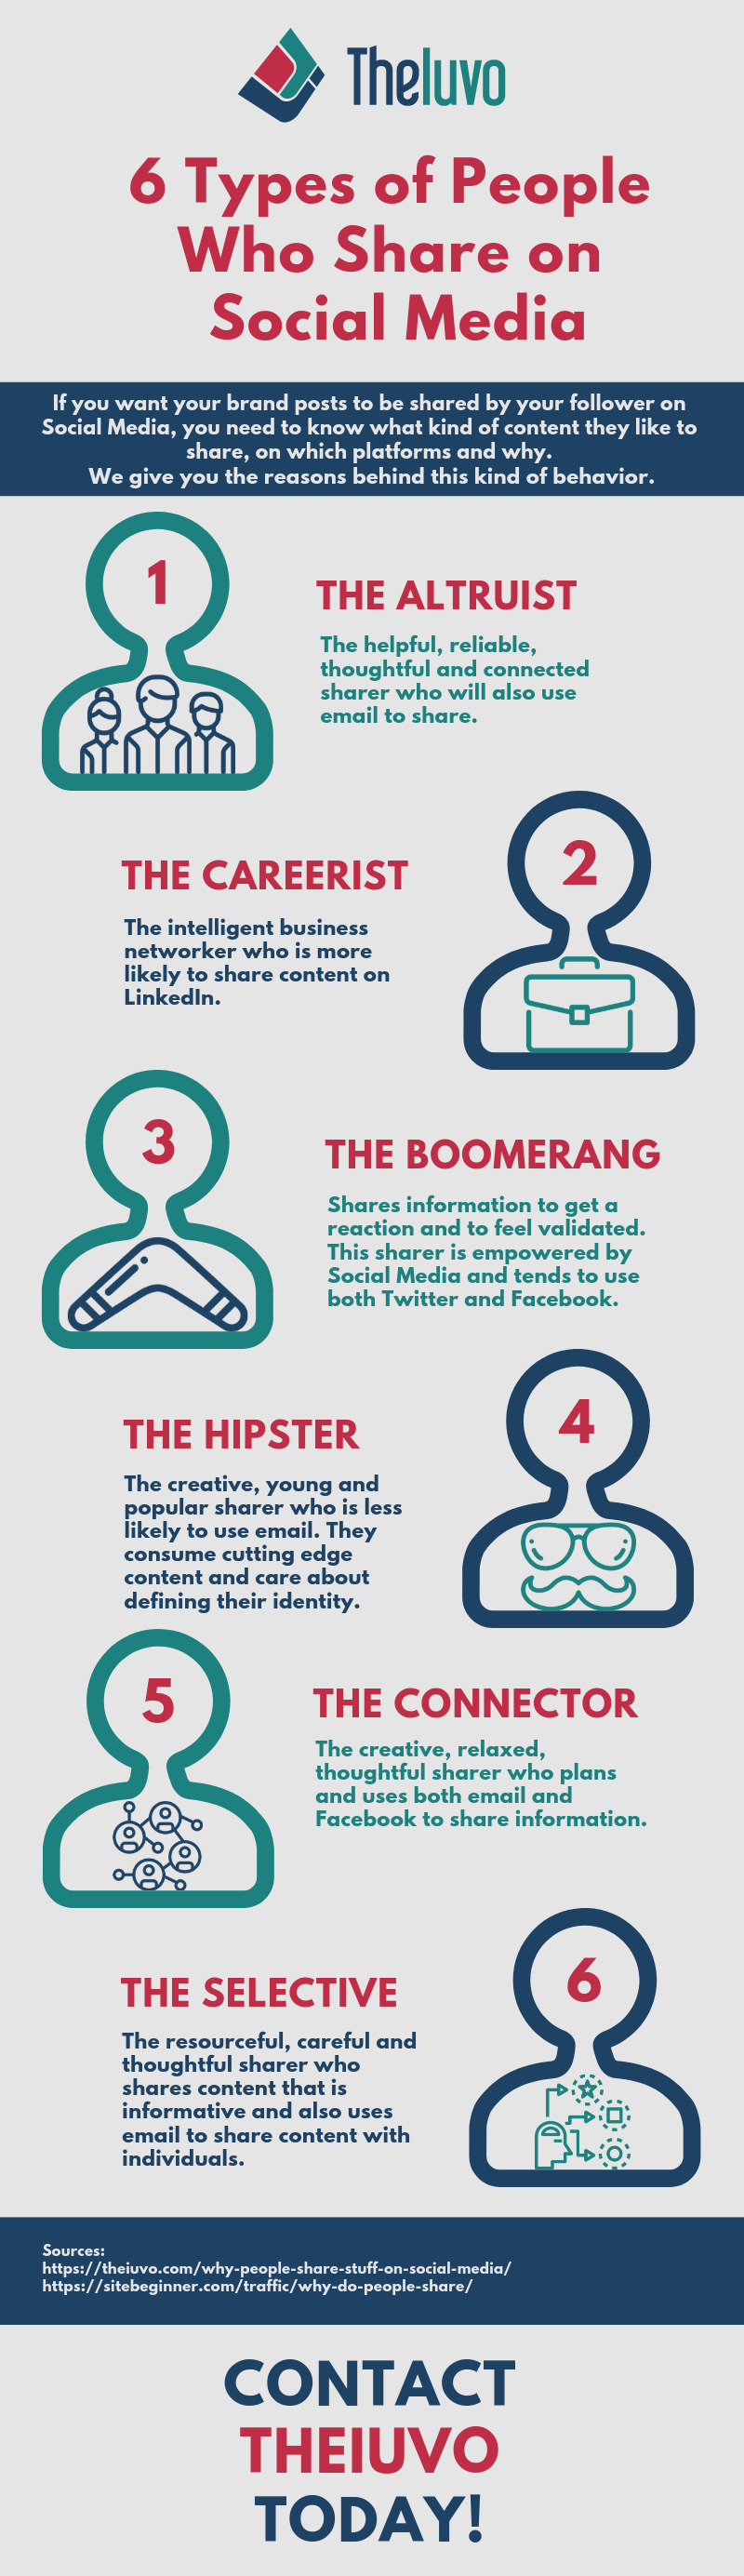 6 Types of People Who Share on Social Media Infographic